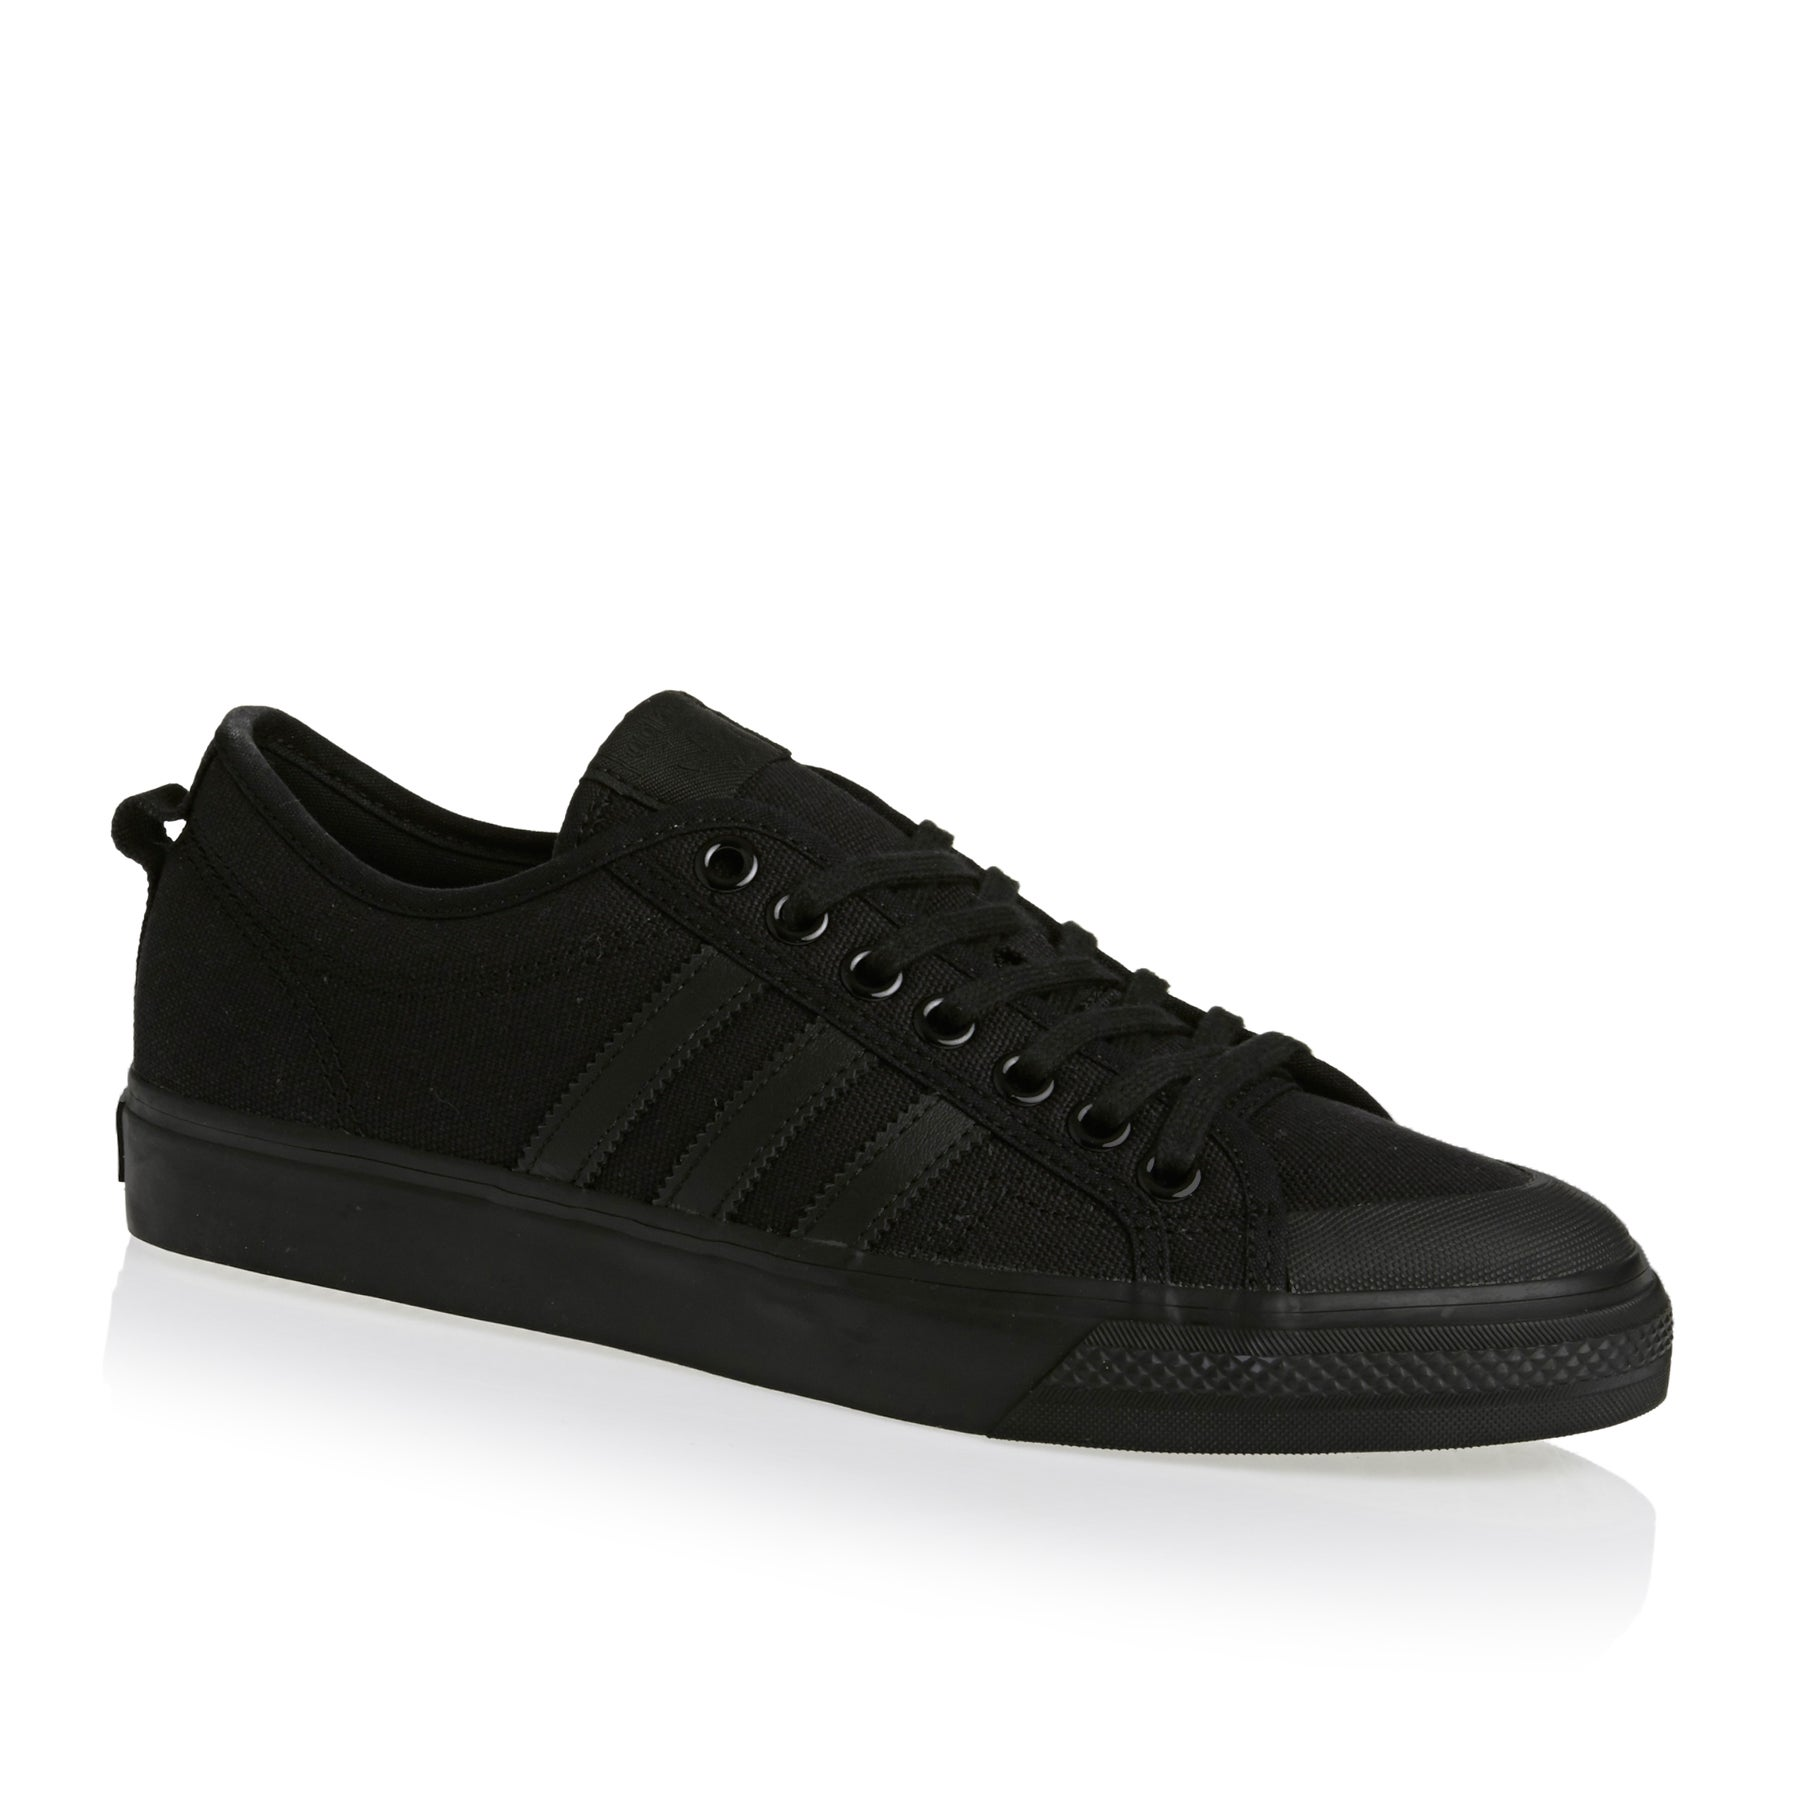 best website 4632f ad205 Adidas Originals Nizza Shoes